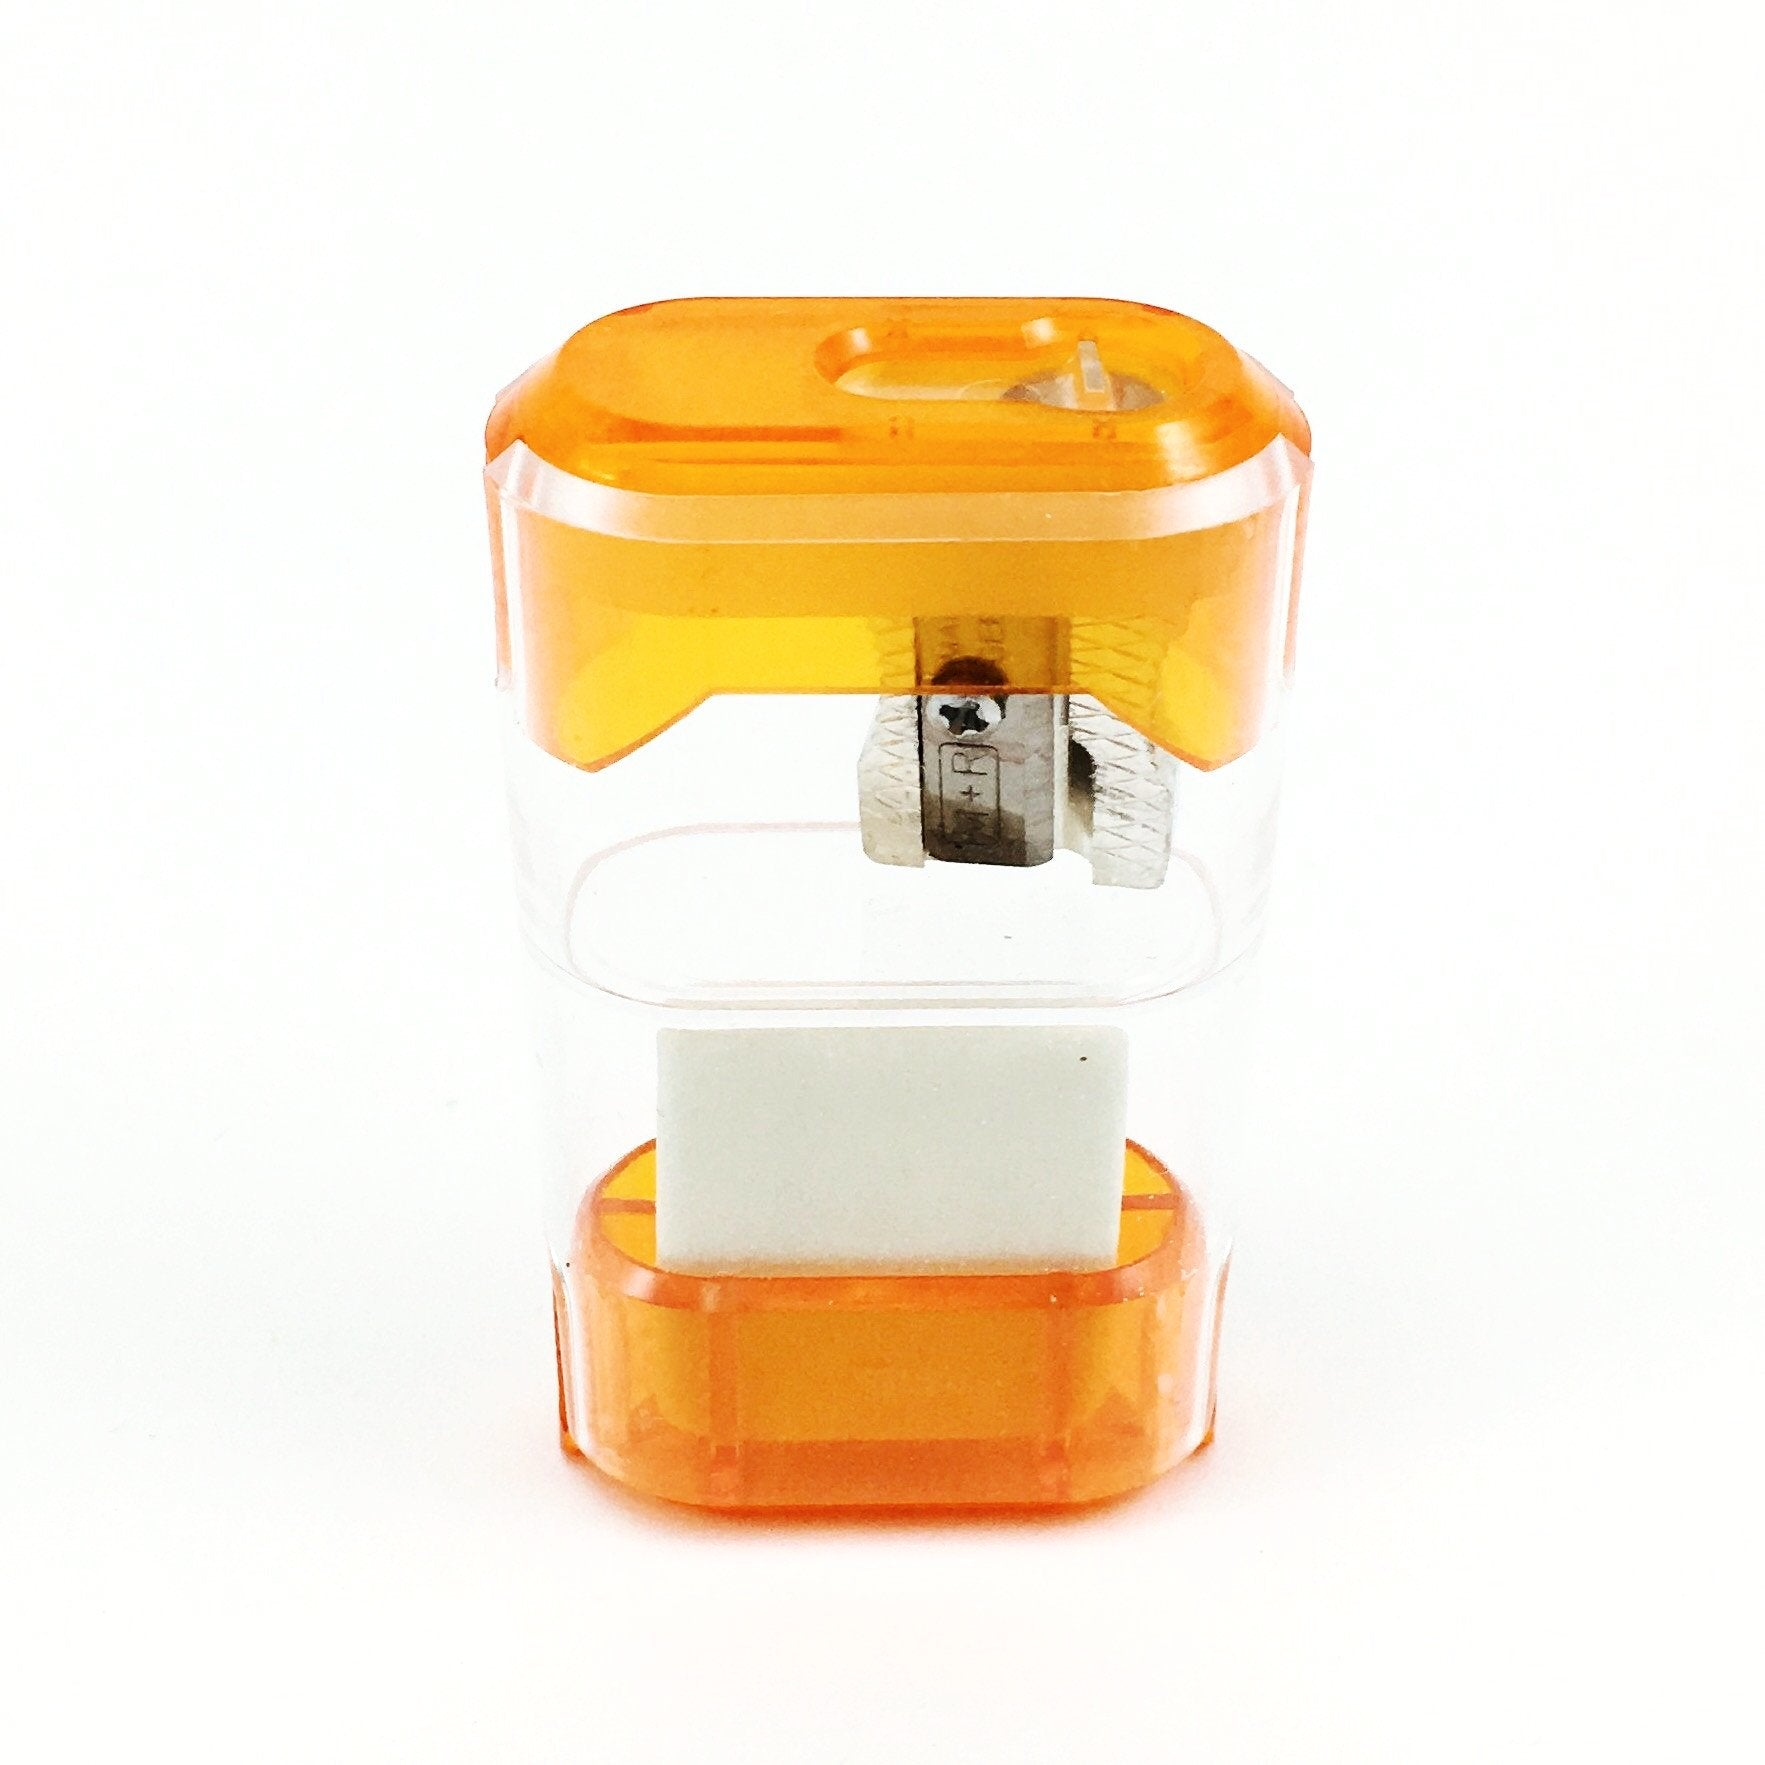 M+R Dual Sharpener and Eraser - Orange by M+R - K. A. Artist Shop